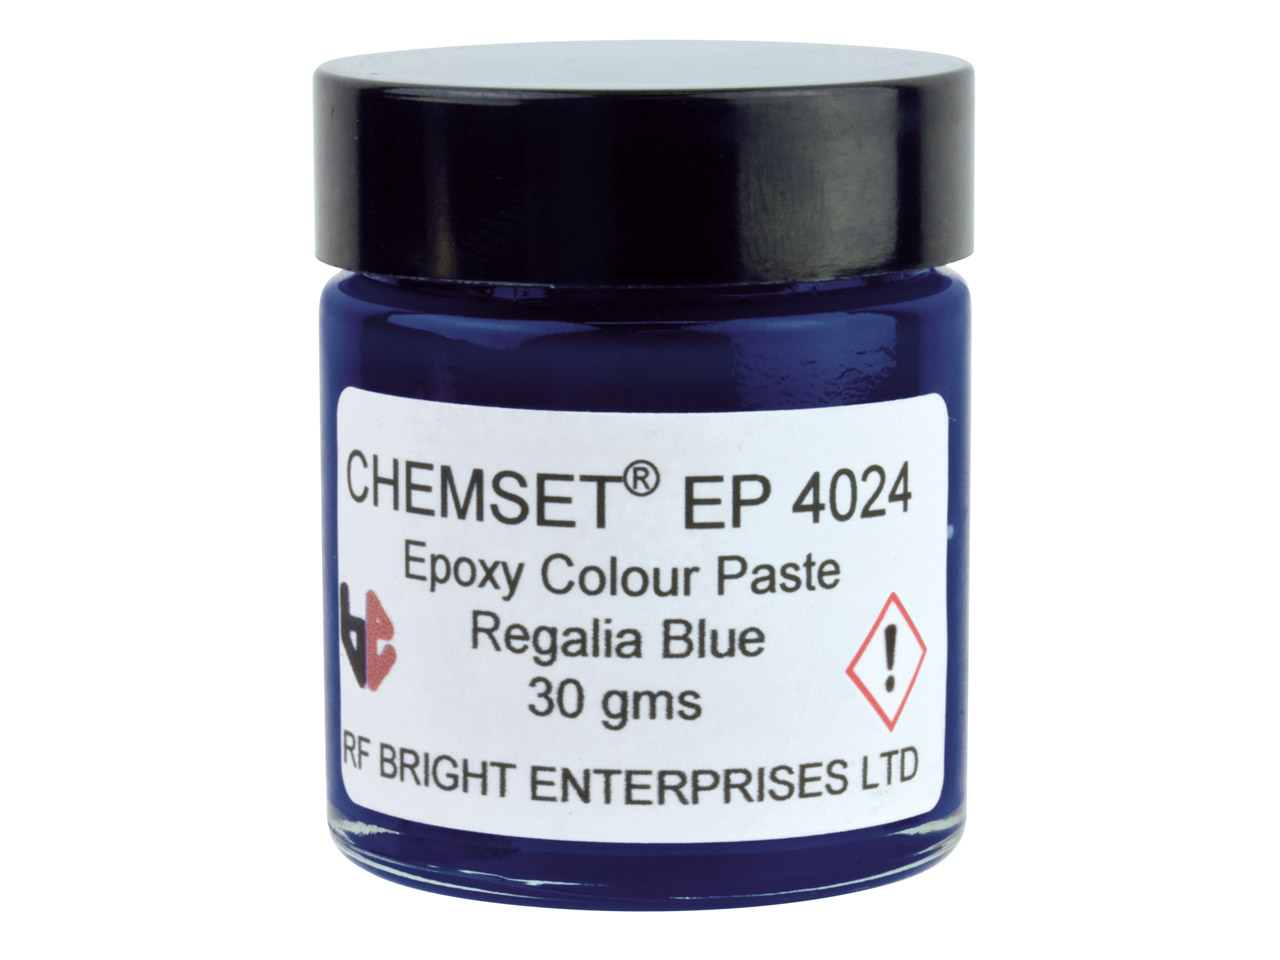 Epoxy Enamel Opaque, Regalia Blue, 30g Paste Un3082